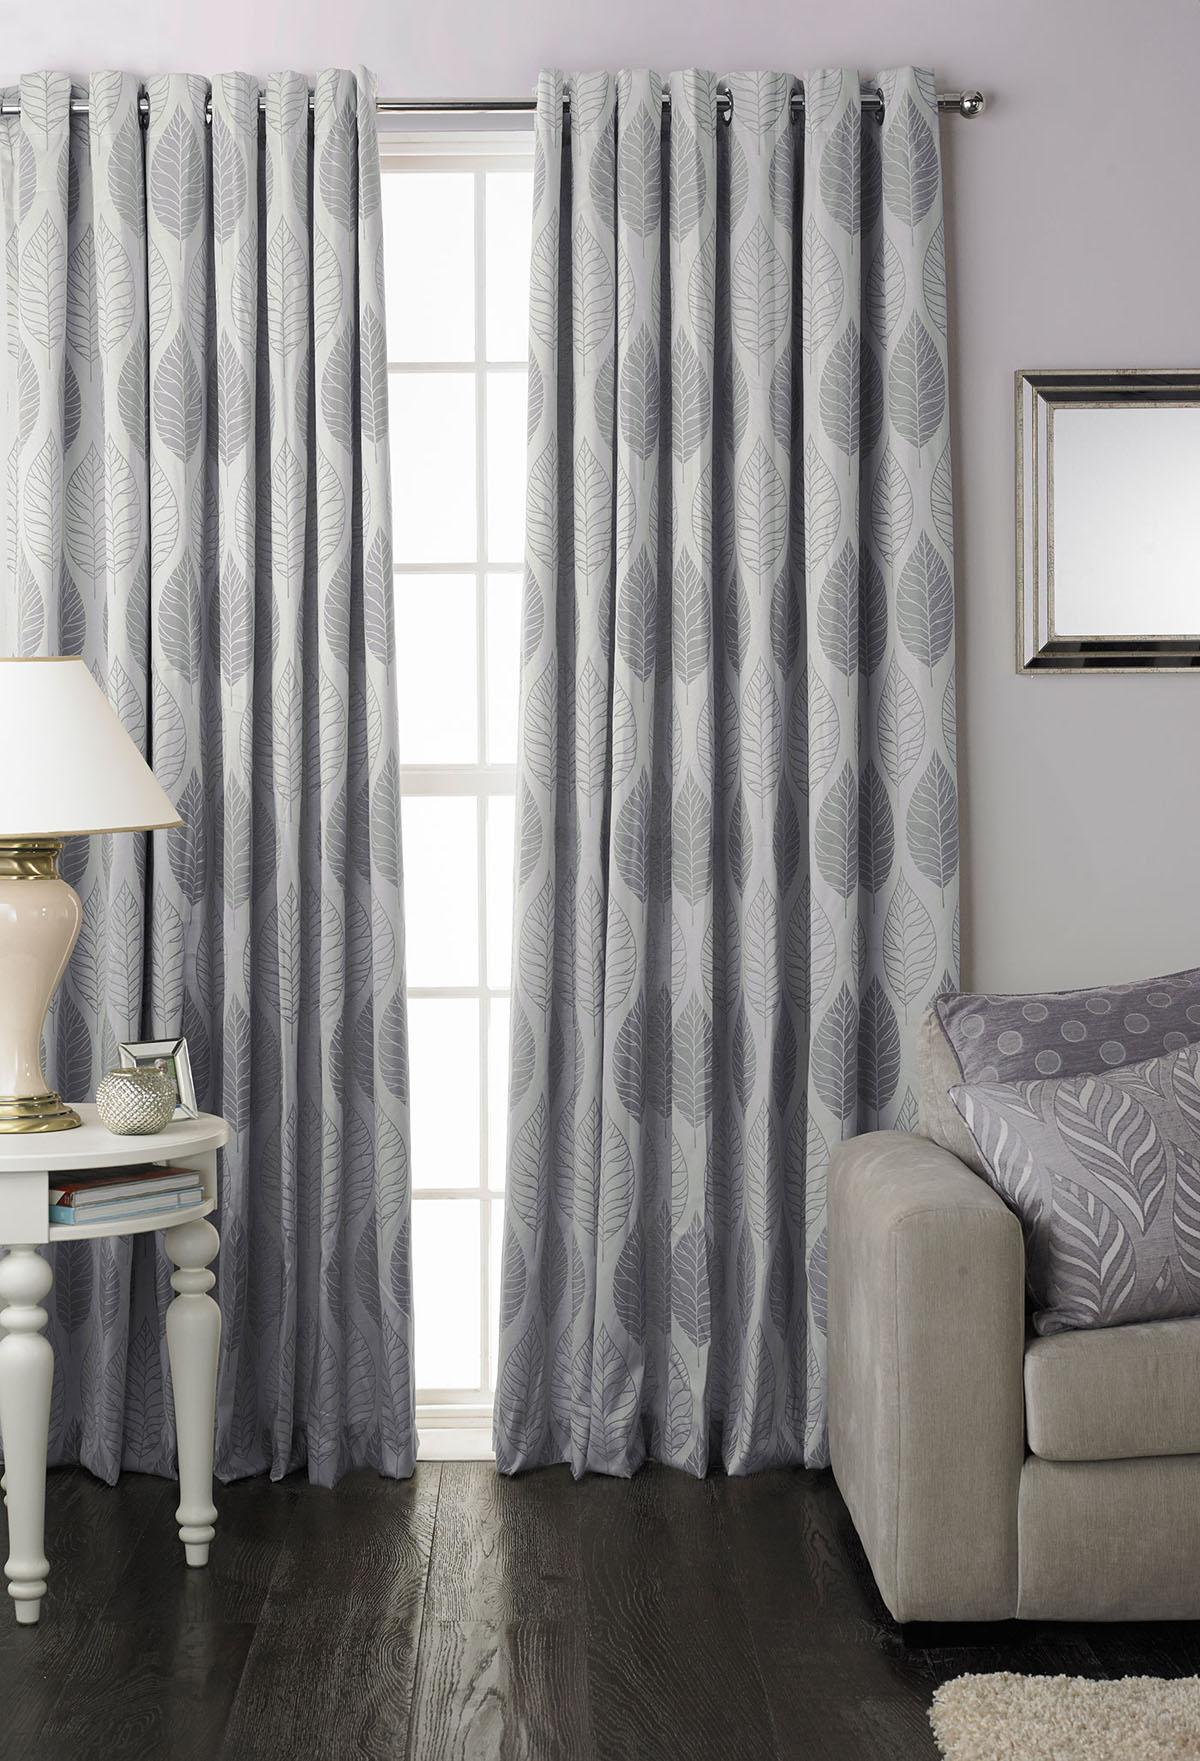 Chic Dalby Ready Made Eyelet Curtains silver eyelet curtains